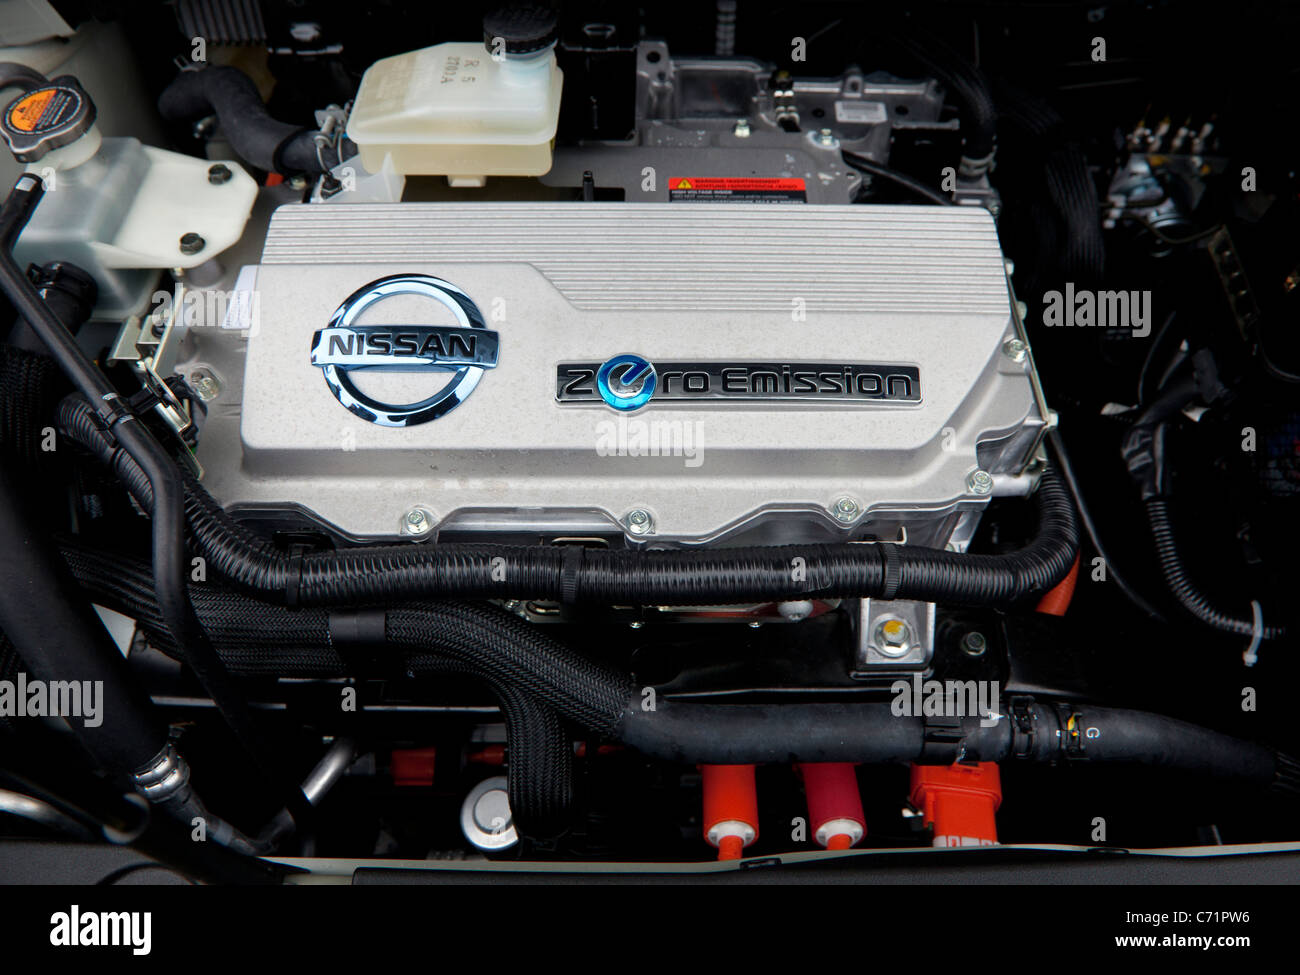 Electric Car Engine Stock Photos & Electric Car Engine Stock Images ...